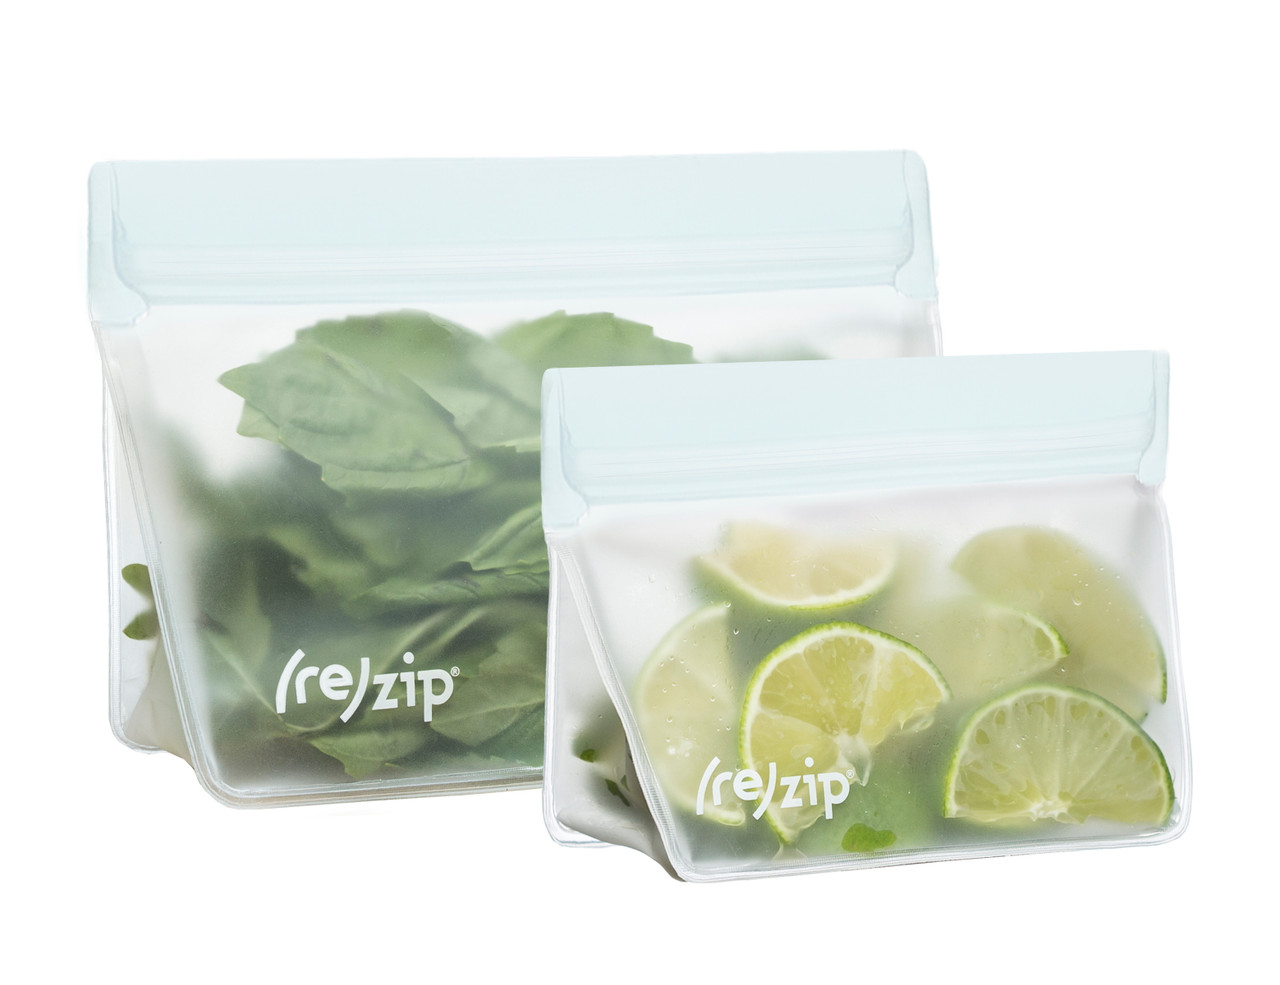 (re)zip Stand-Up Leakproof Reusable Storage Bags (1 cup + 2 cup)